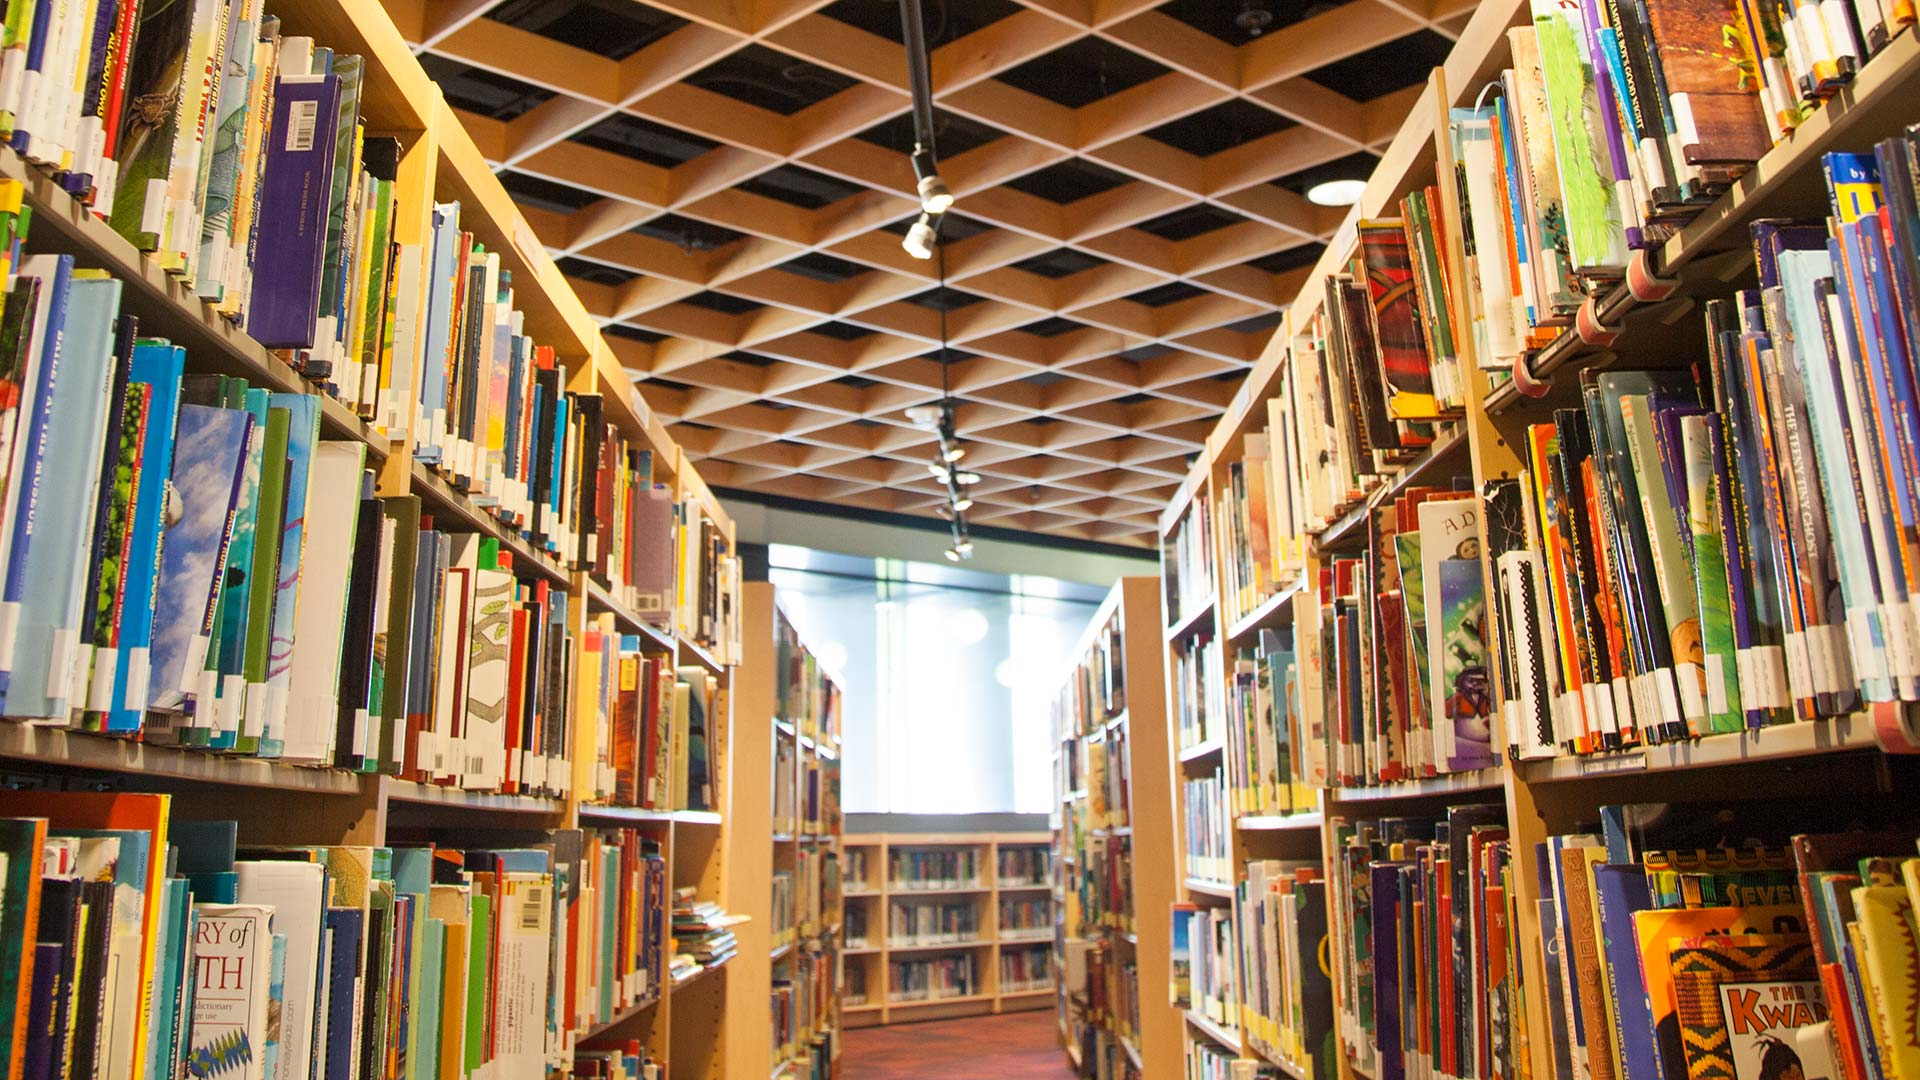 Worlds of Words has a 40,000-book collection and is housed at the University of Arizona College of Education.